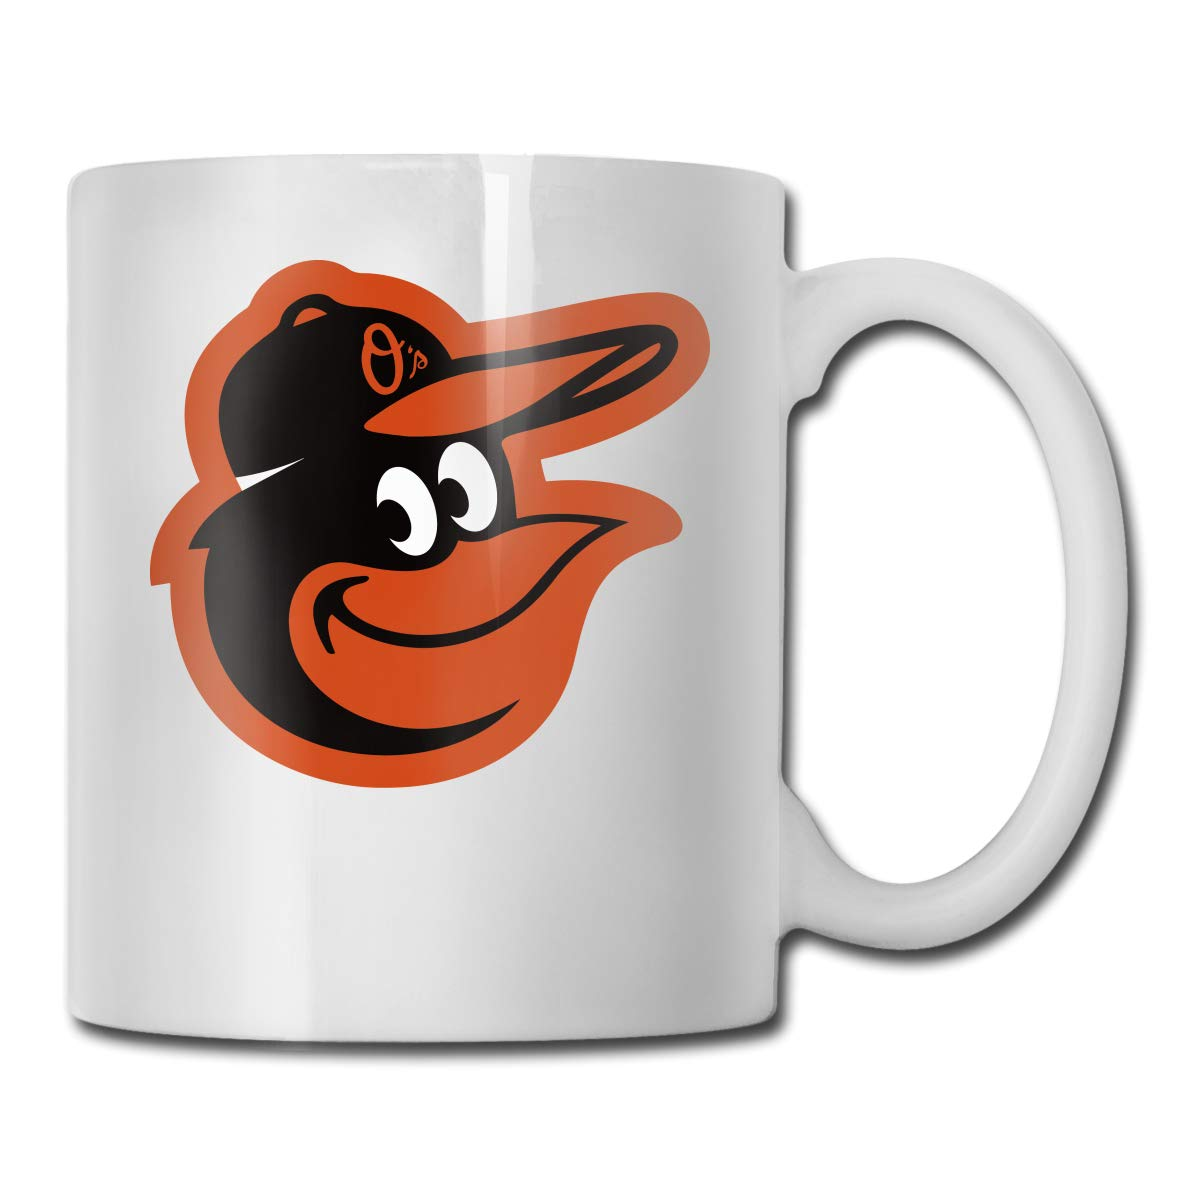 Office Coffee Cup BaltimoreOriolesCap Geblackus 14.72 OZ Capacity Mug is Perfect for CoffeeWhite